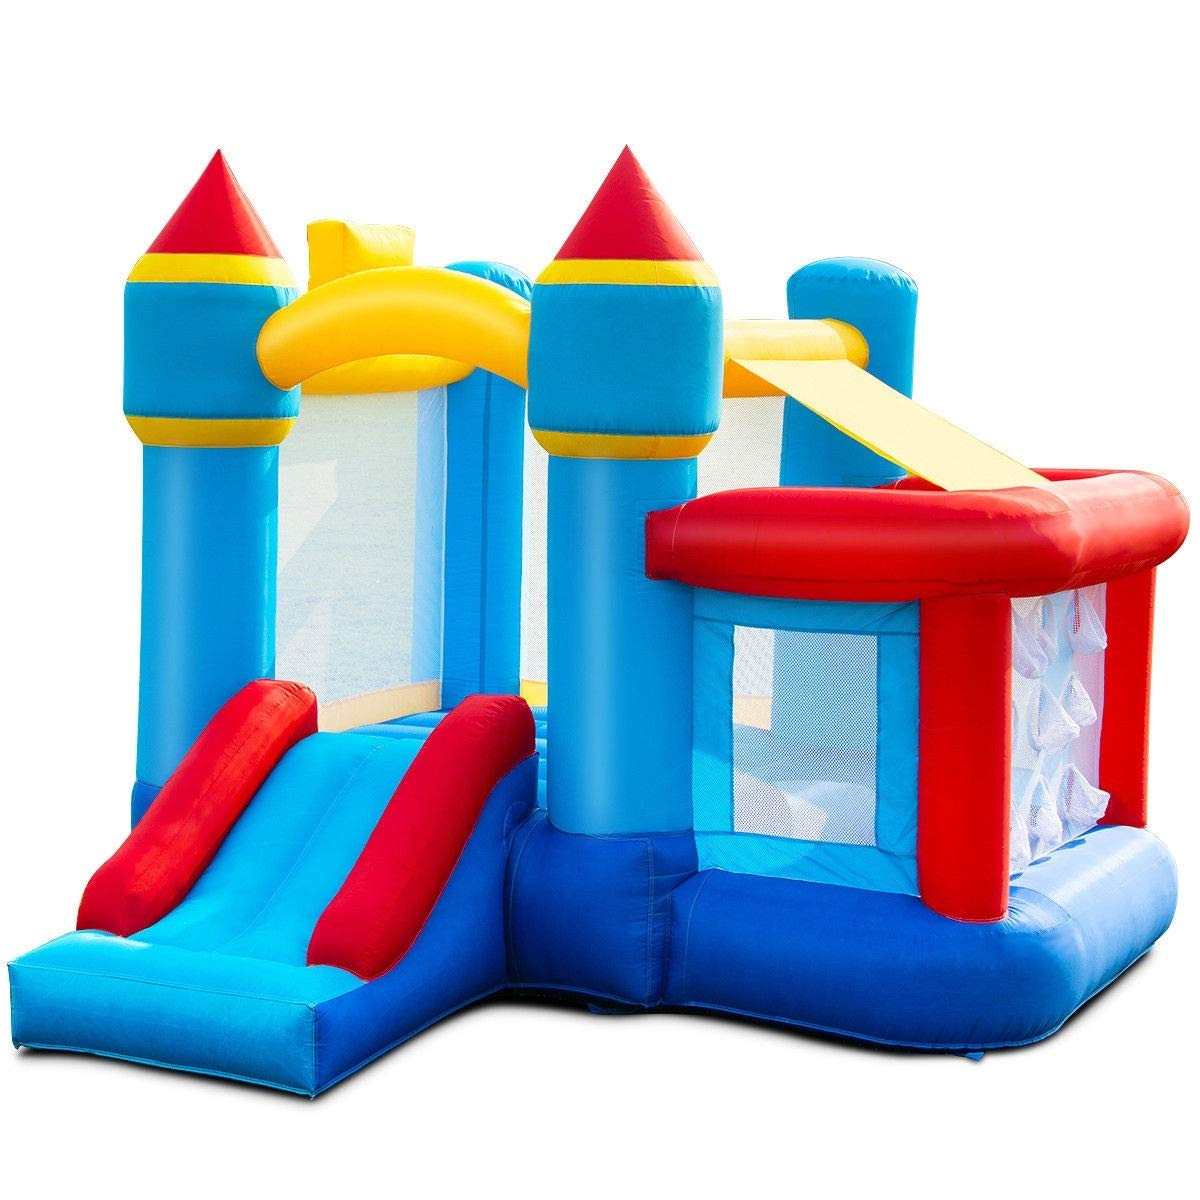 Amazon.com: USA_BEST_SELLER - Castillo hinchable para niños ...